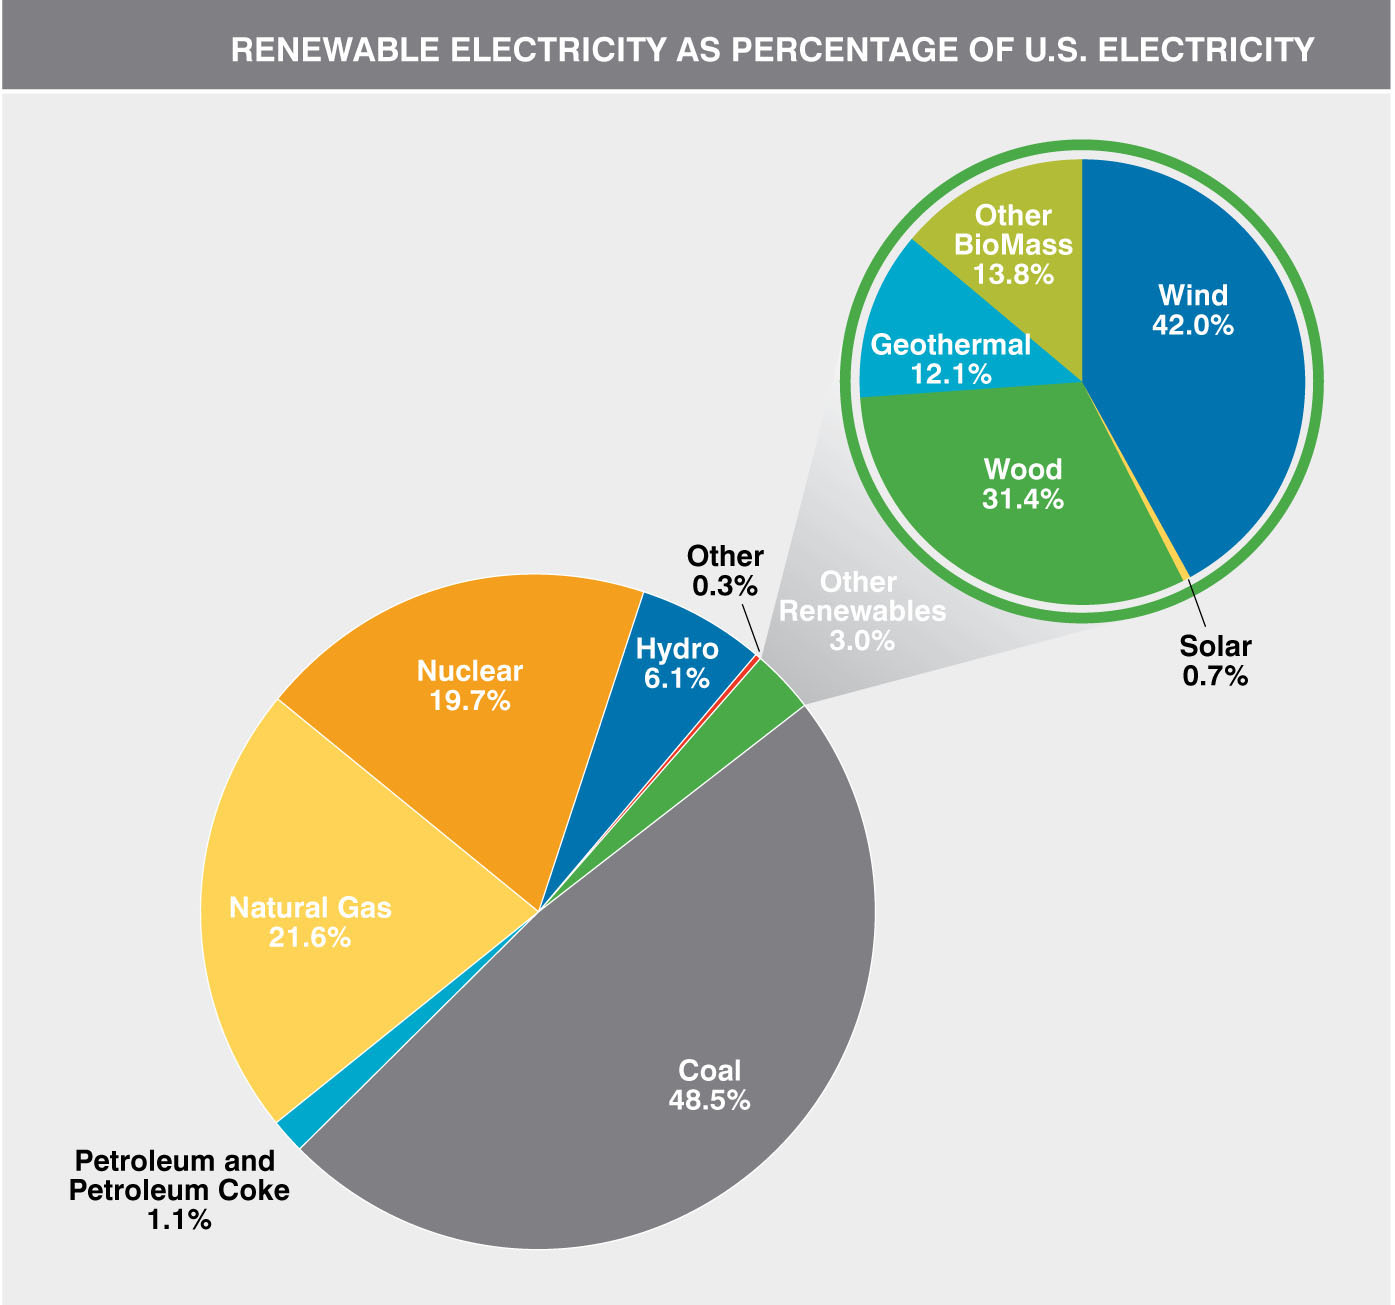 Renewable Electricity as Percentage of US Electricity Chart